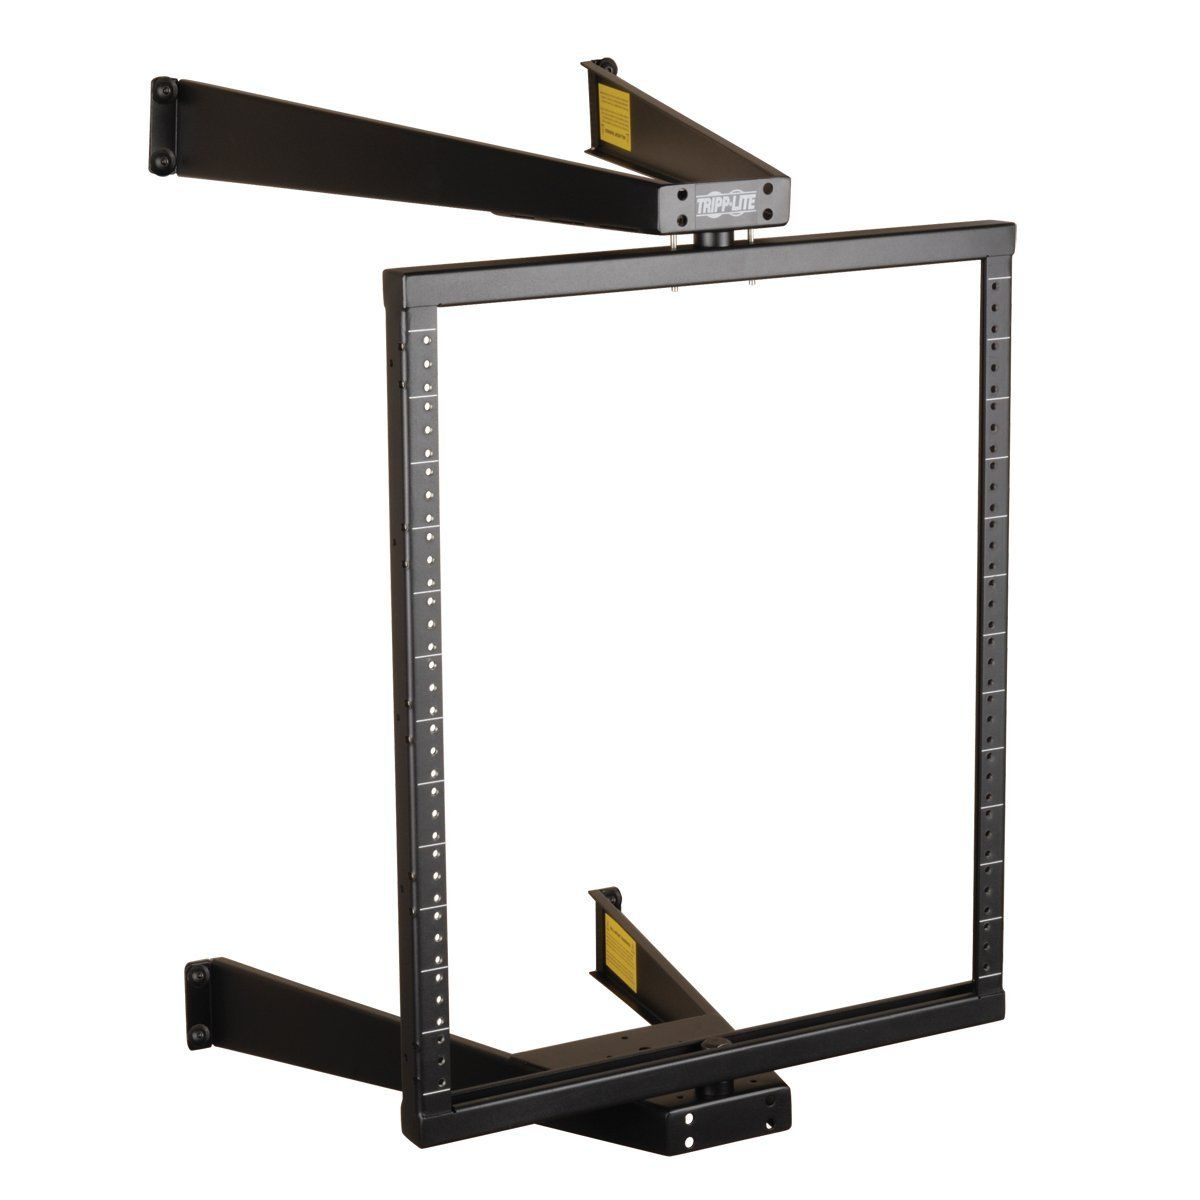 triplite hinged rack